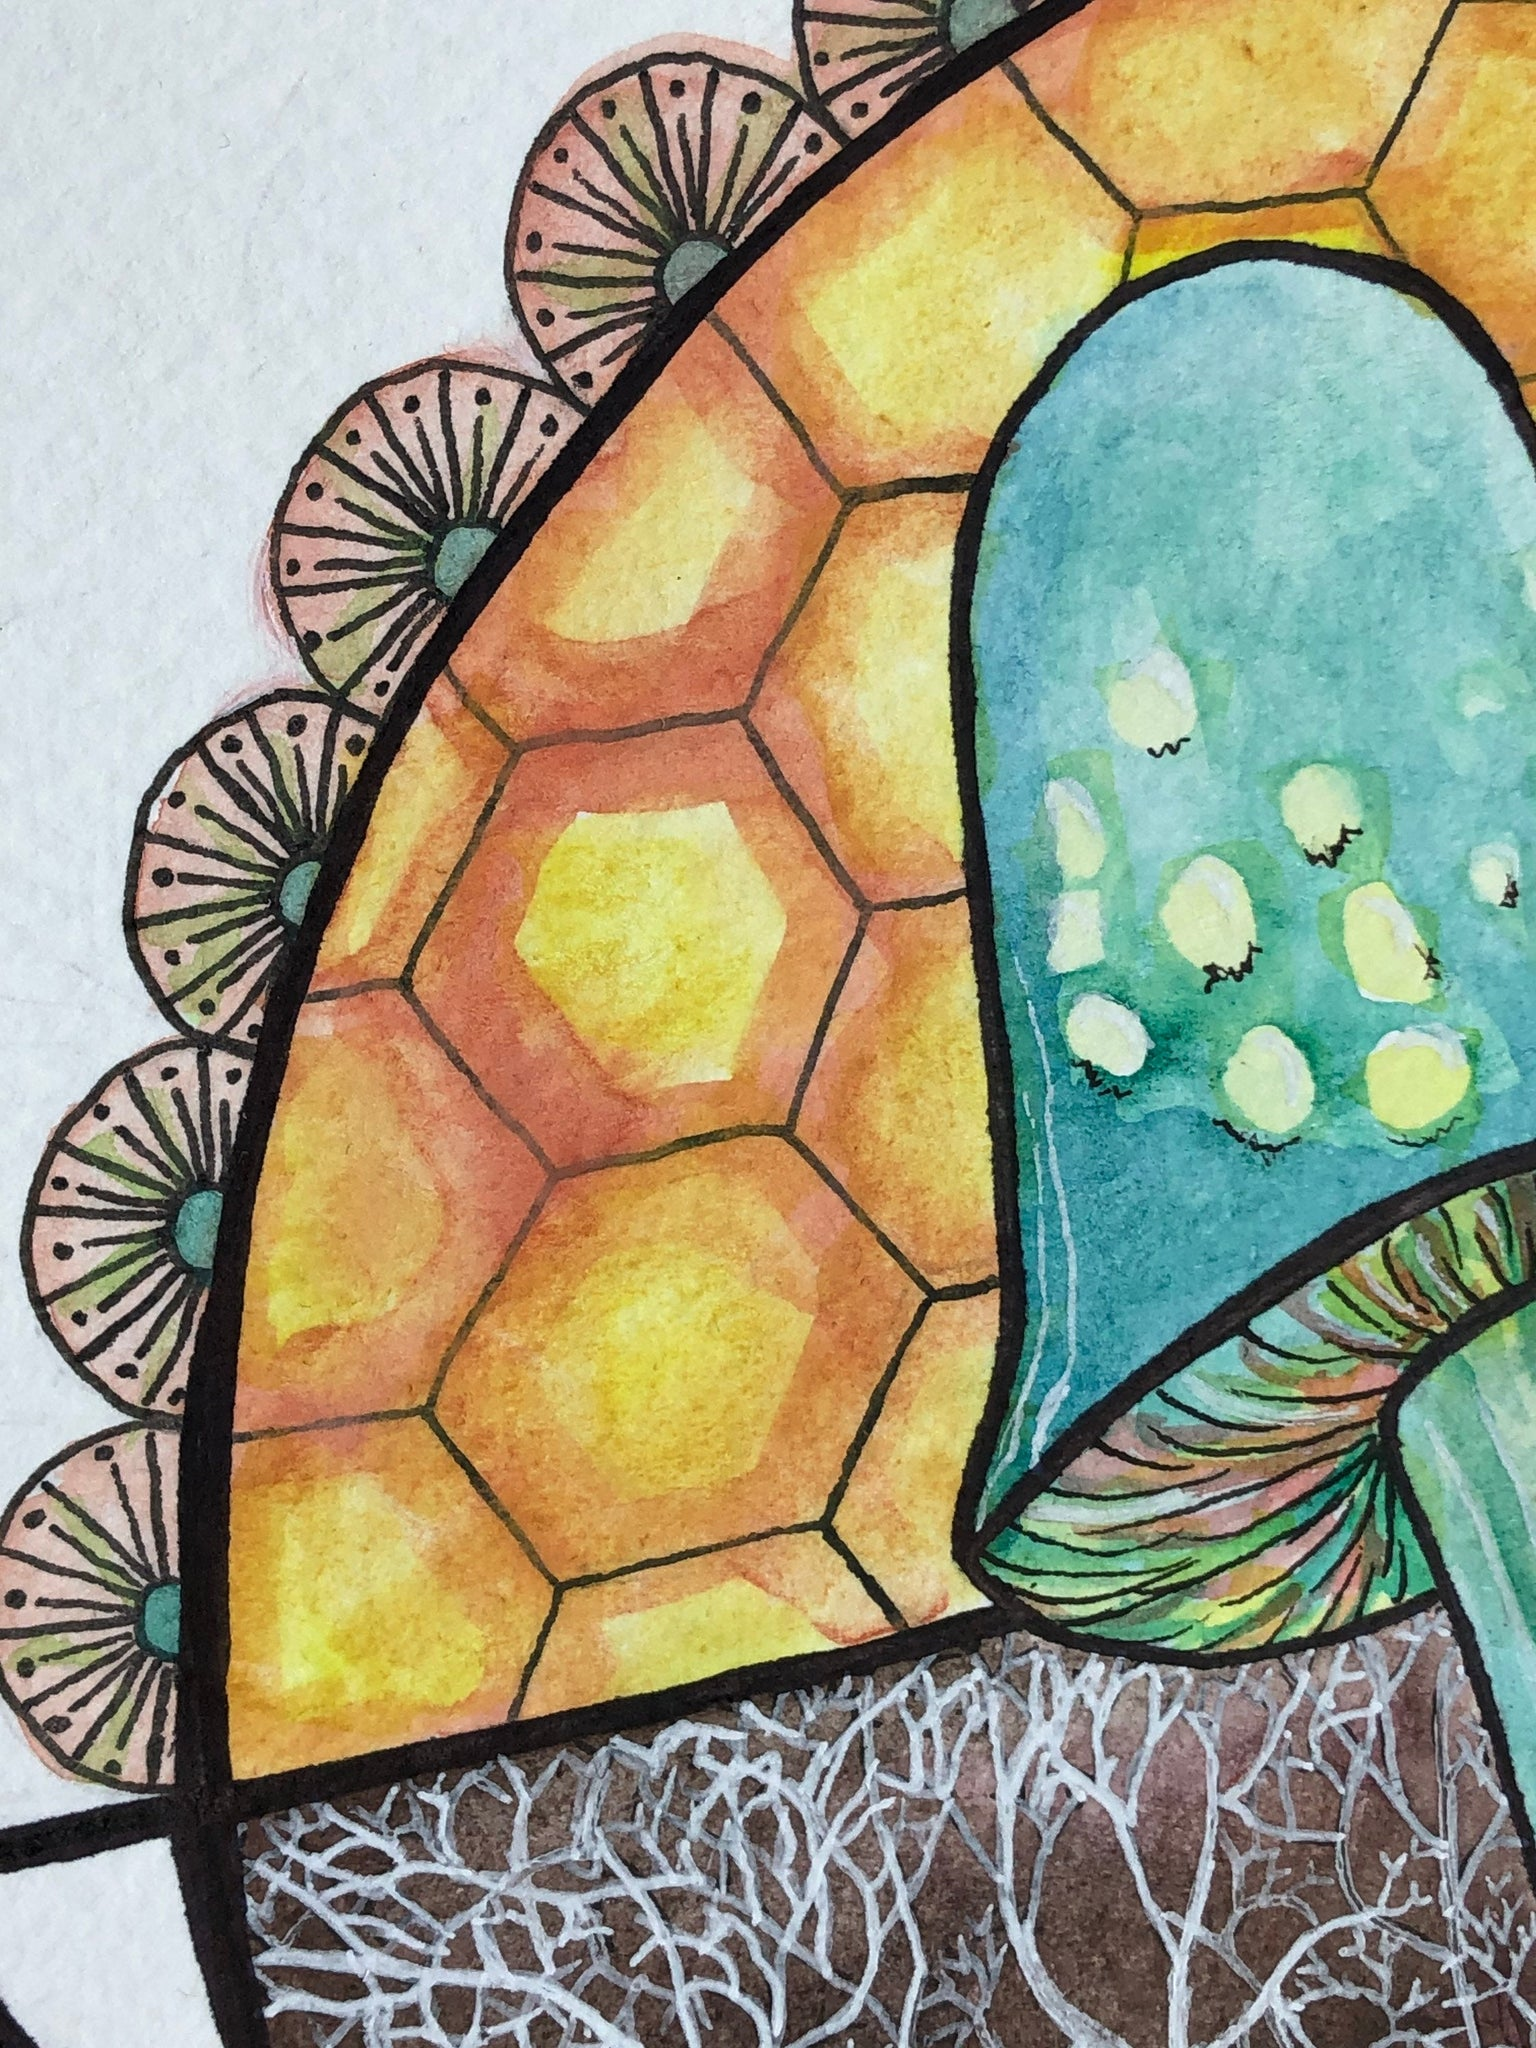 Bees Need Mycelium / Original Painting by Heather Stone / Watercolor on Paper / Ink / Colorful Art / Crystal Mushroom Artwork Moon Decor